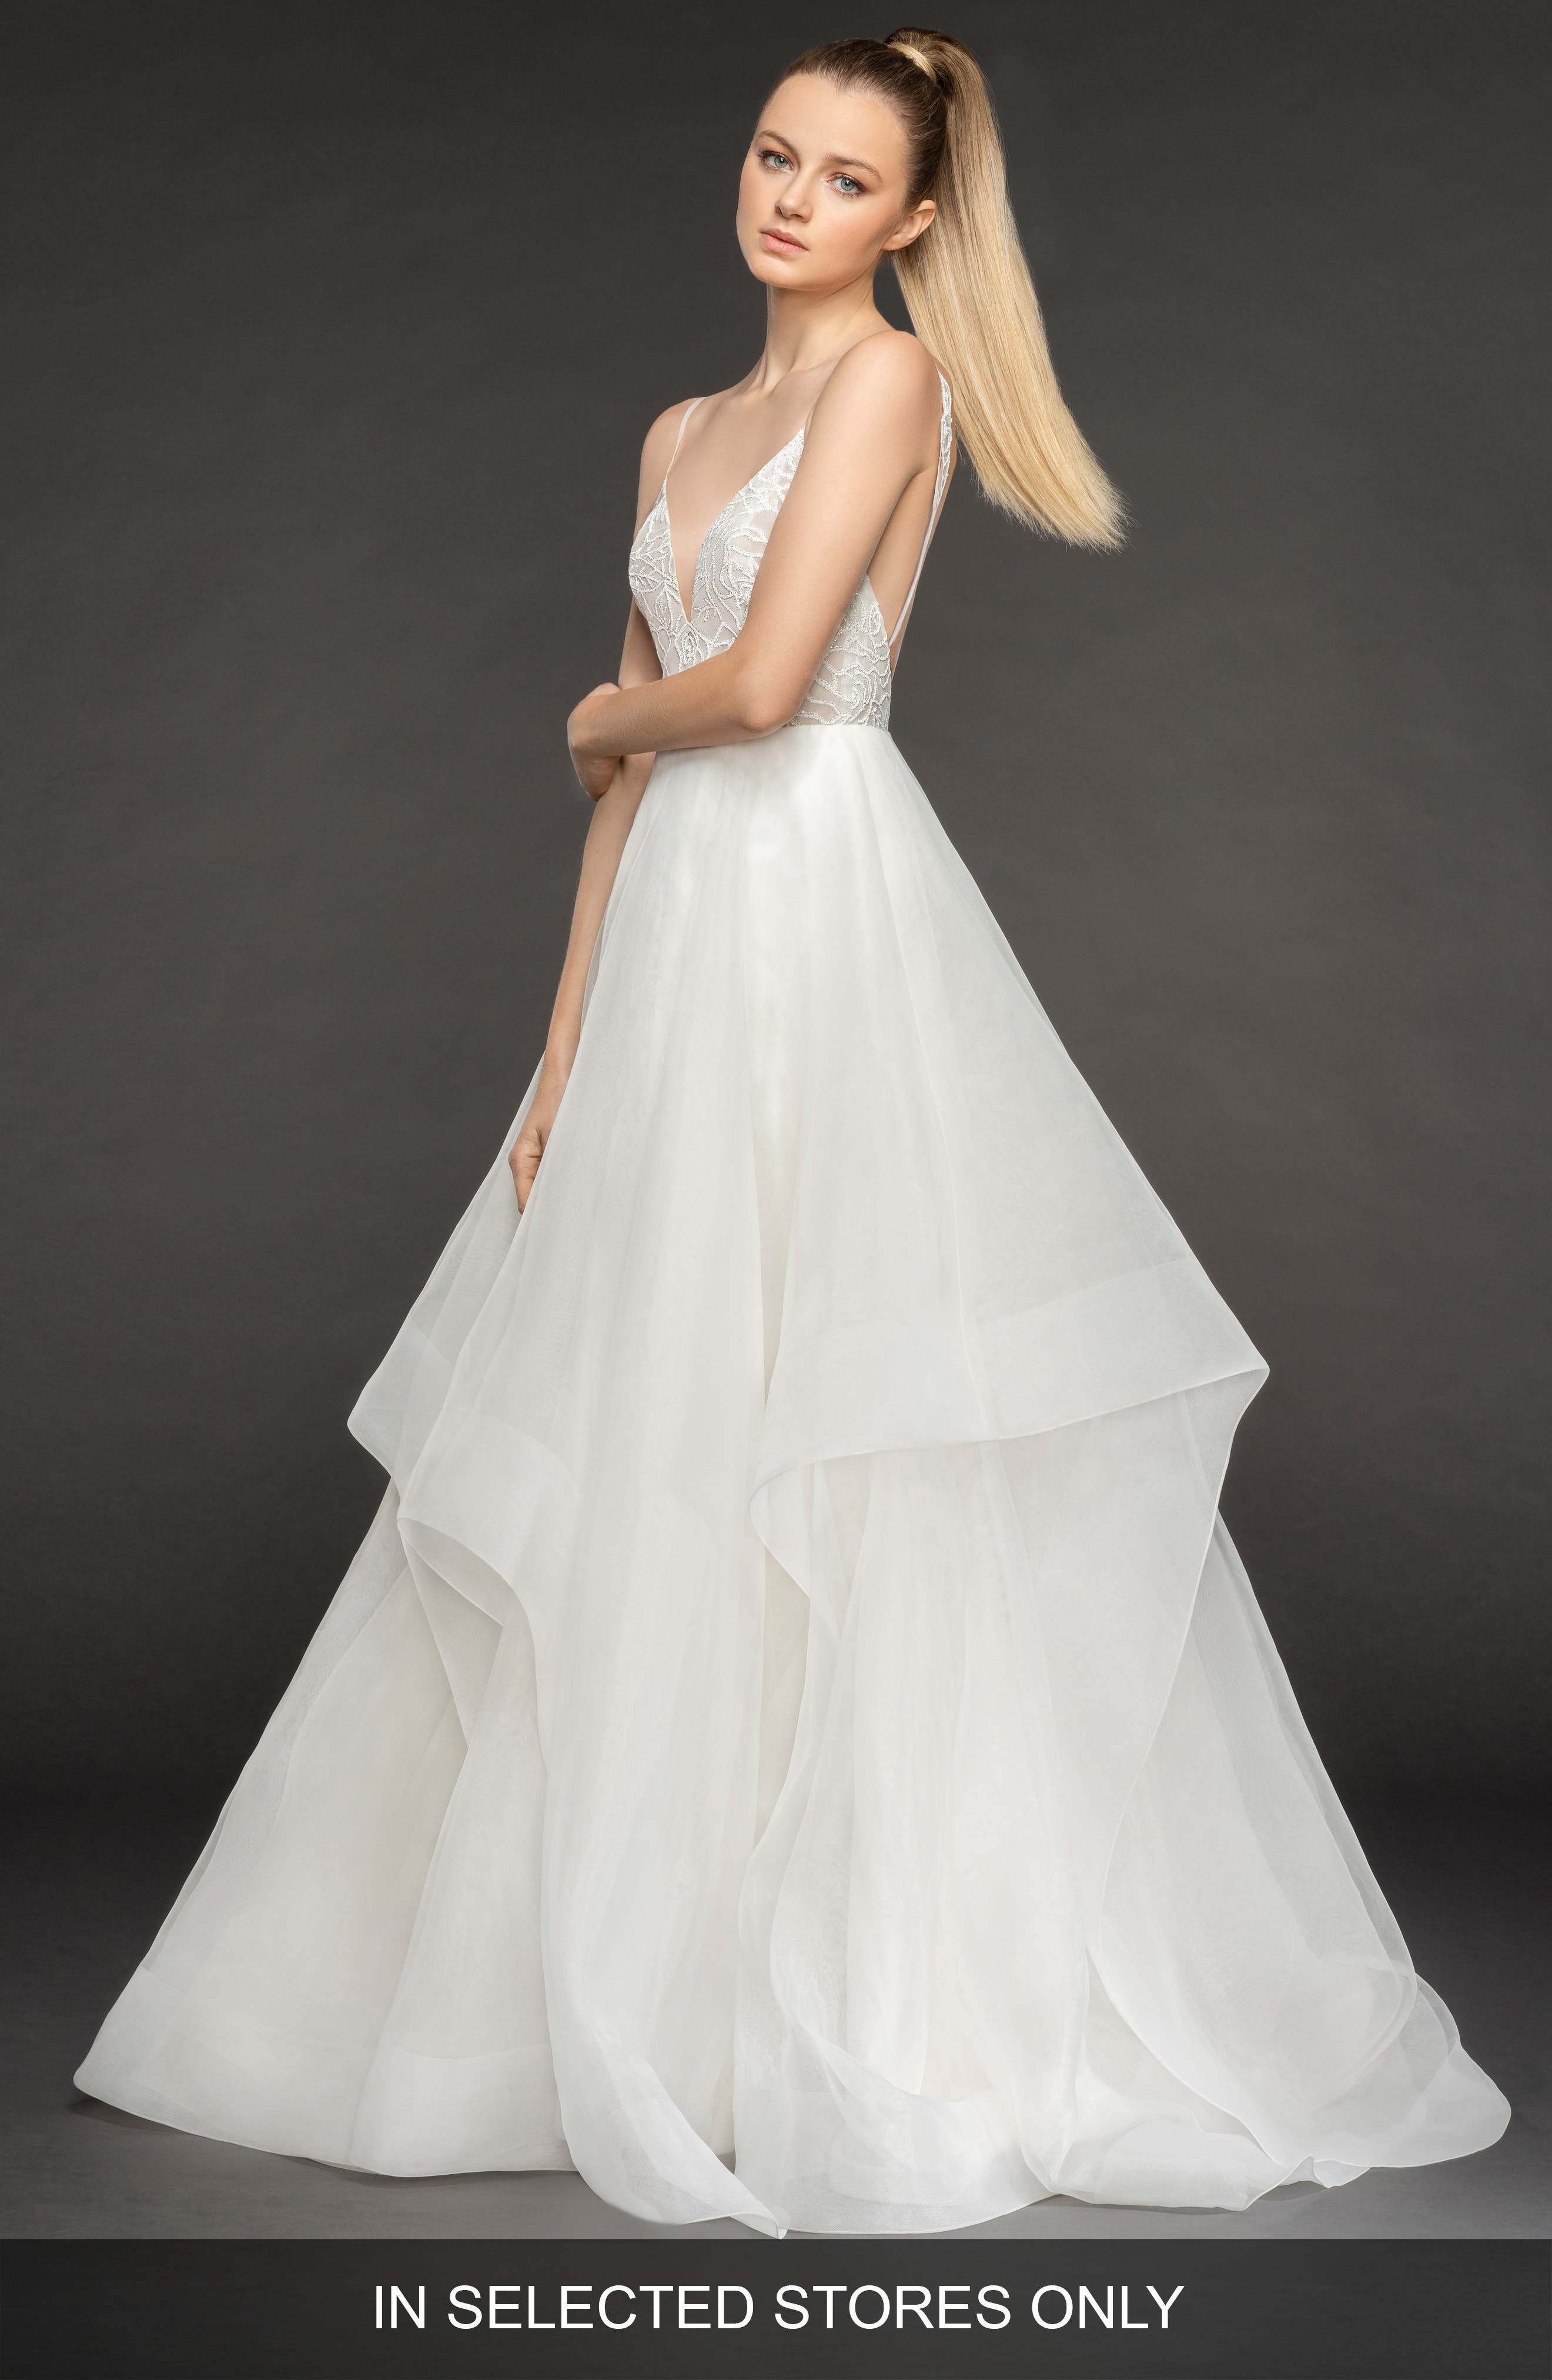 Blush By Hayley Paige Perri Tiered Organza Ballgown, Size IN STORE ONLY - Ivory